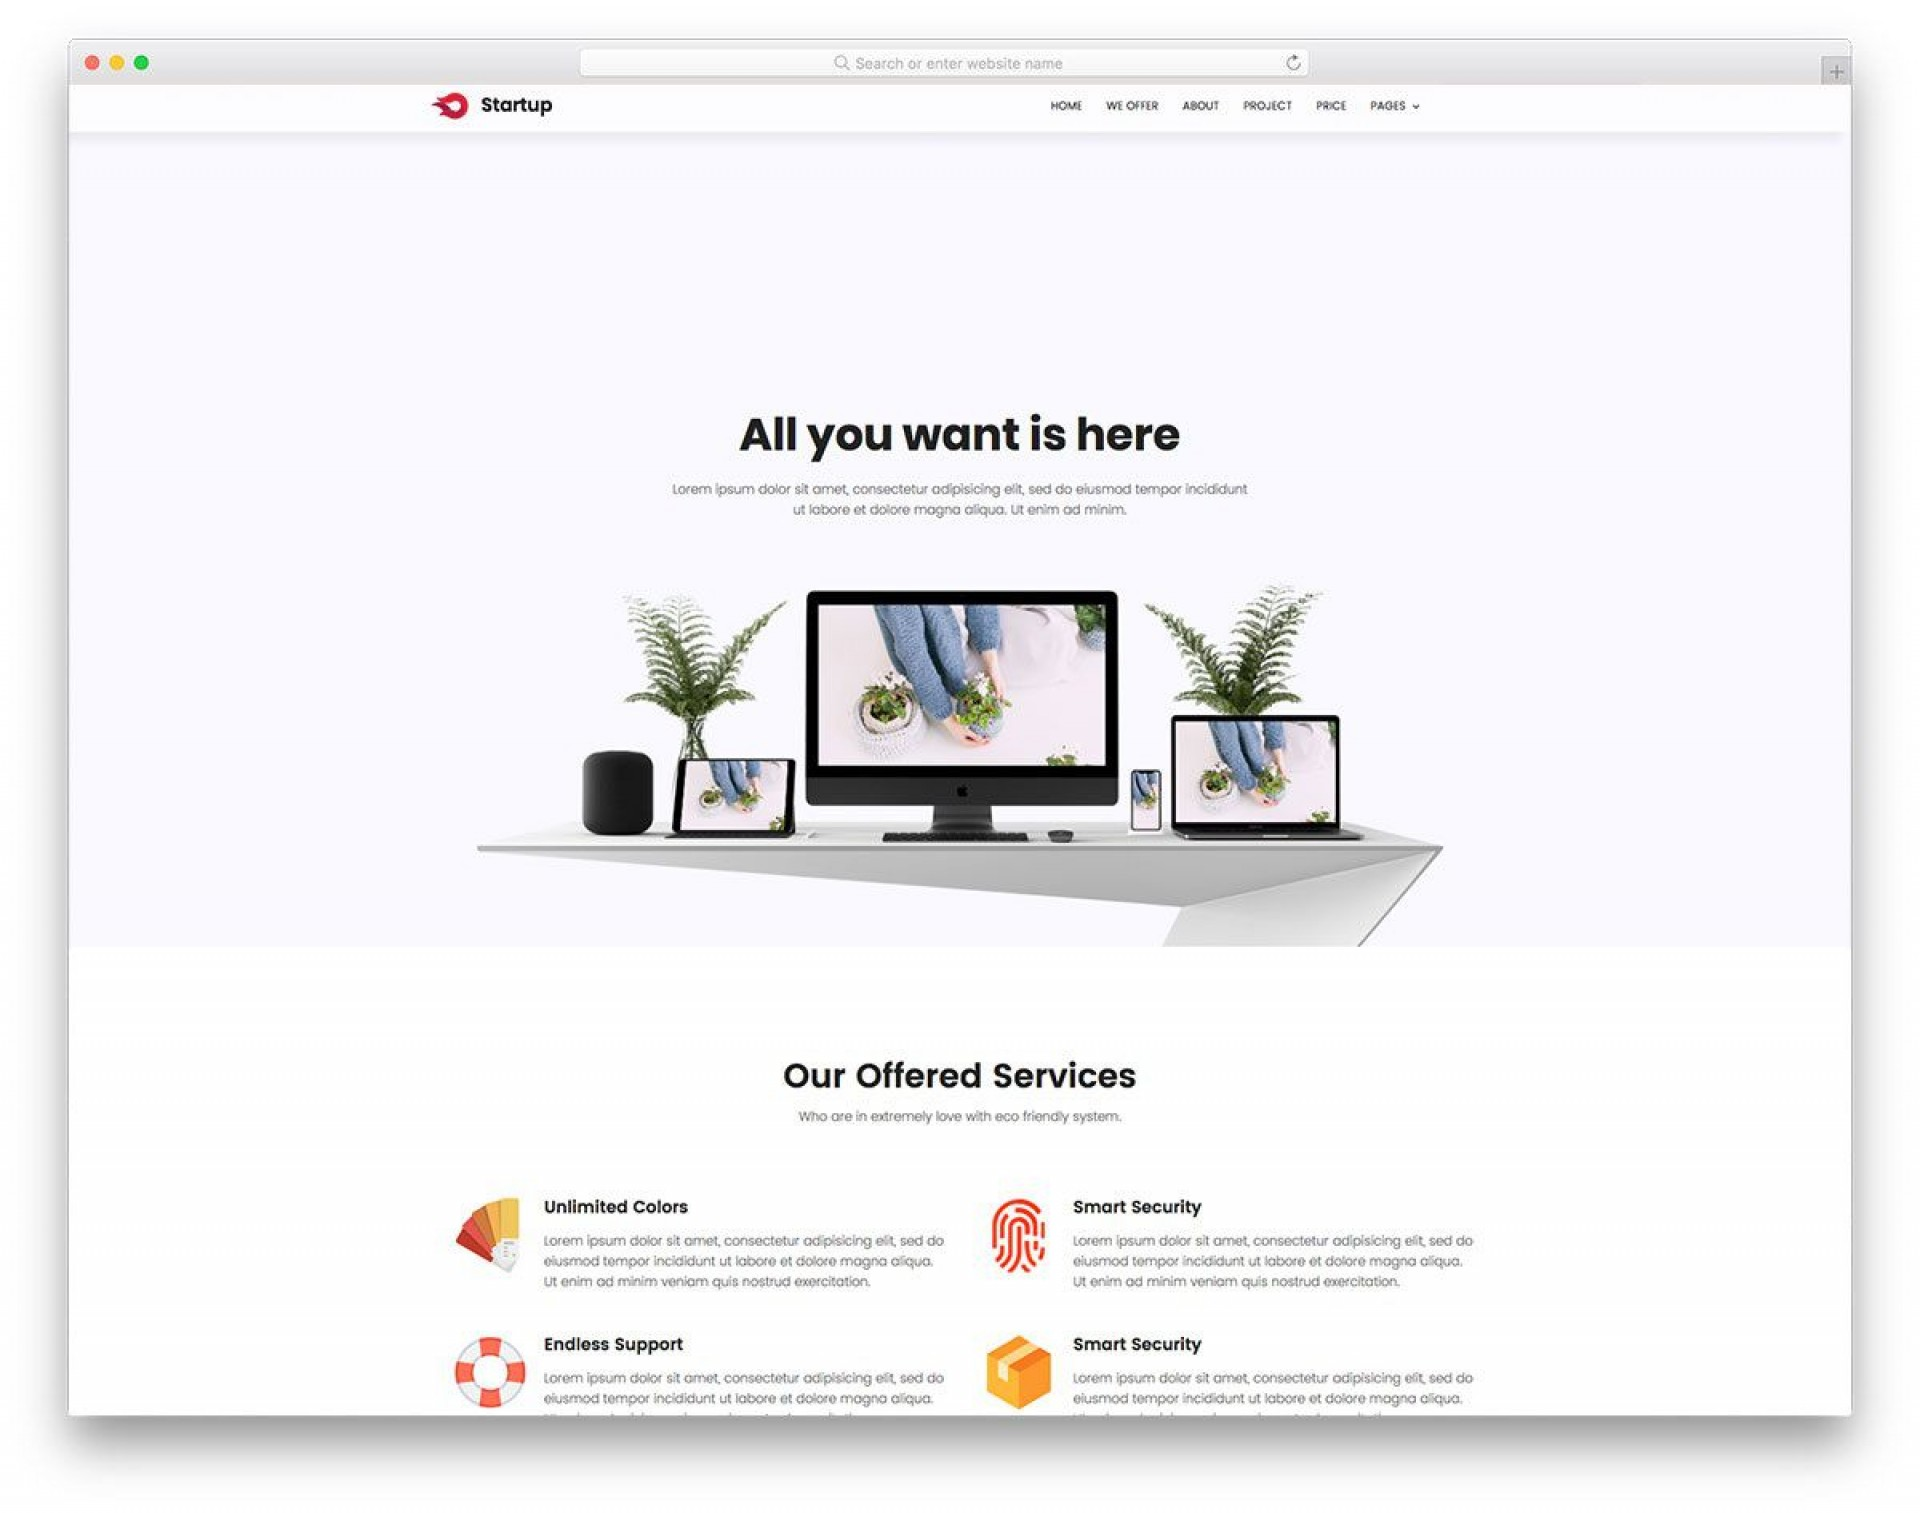 007 Marvelou Free Simple Web Page Template Example  Html Website Cs1920